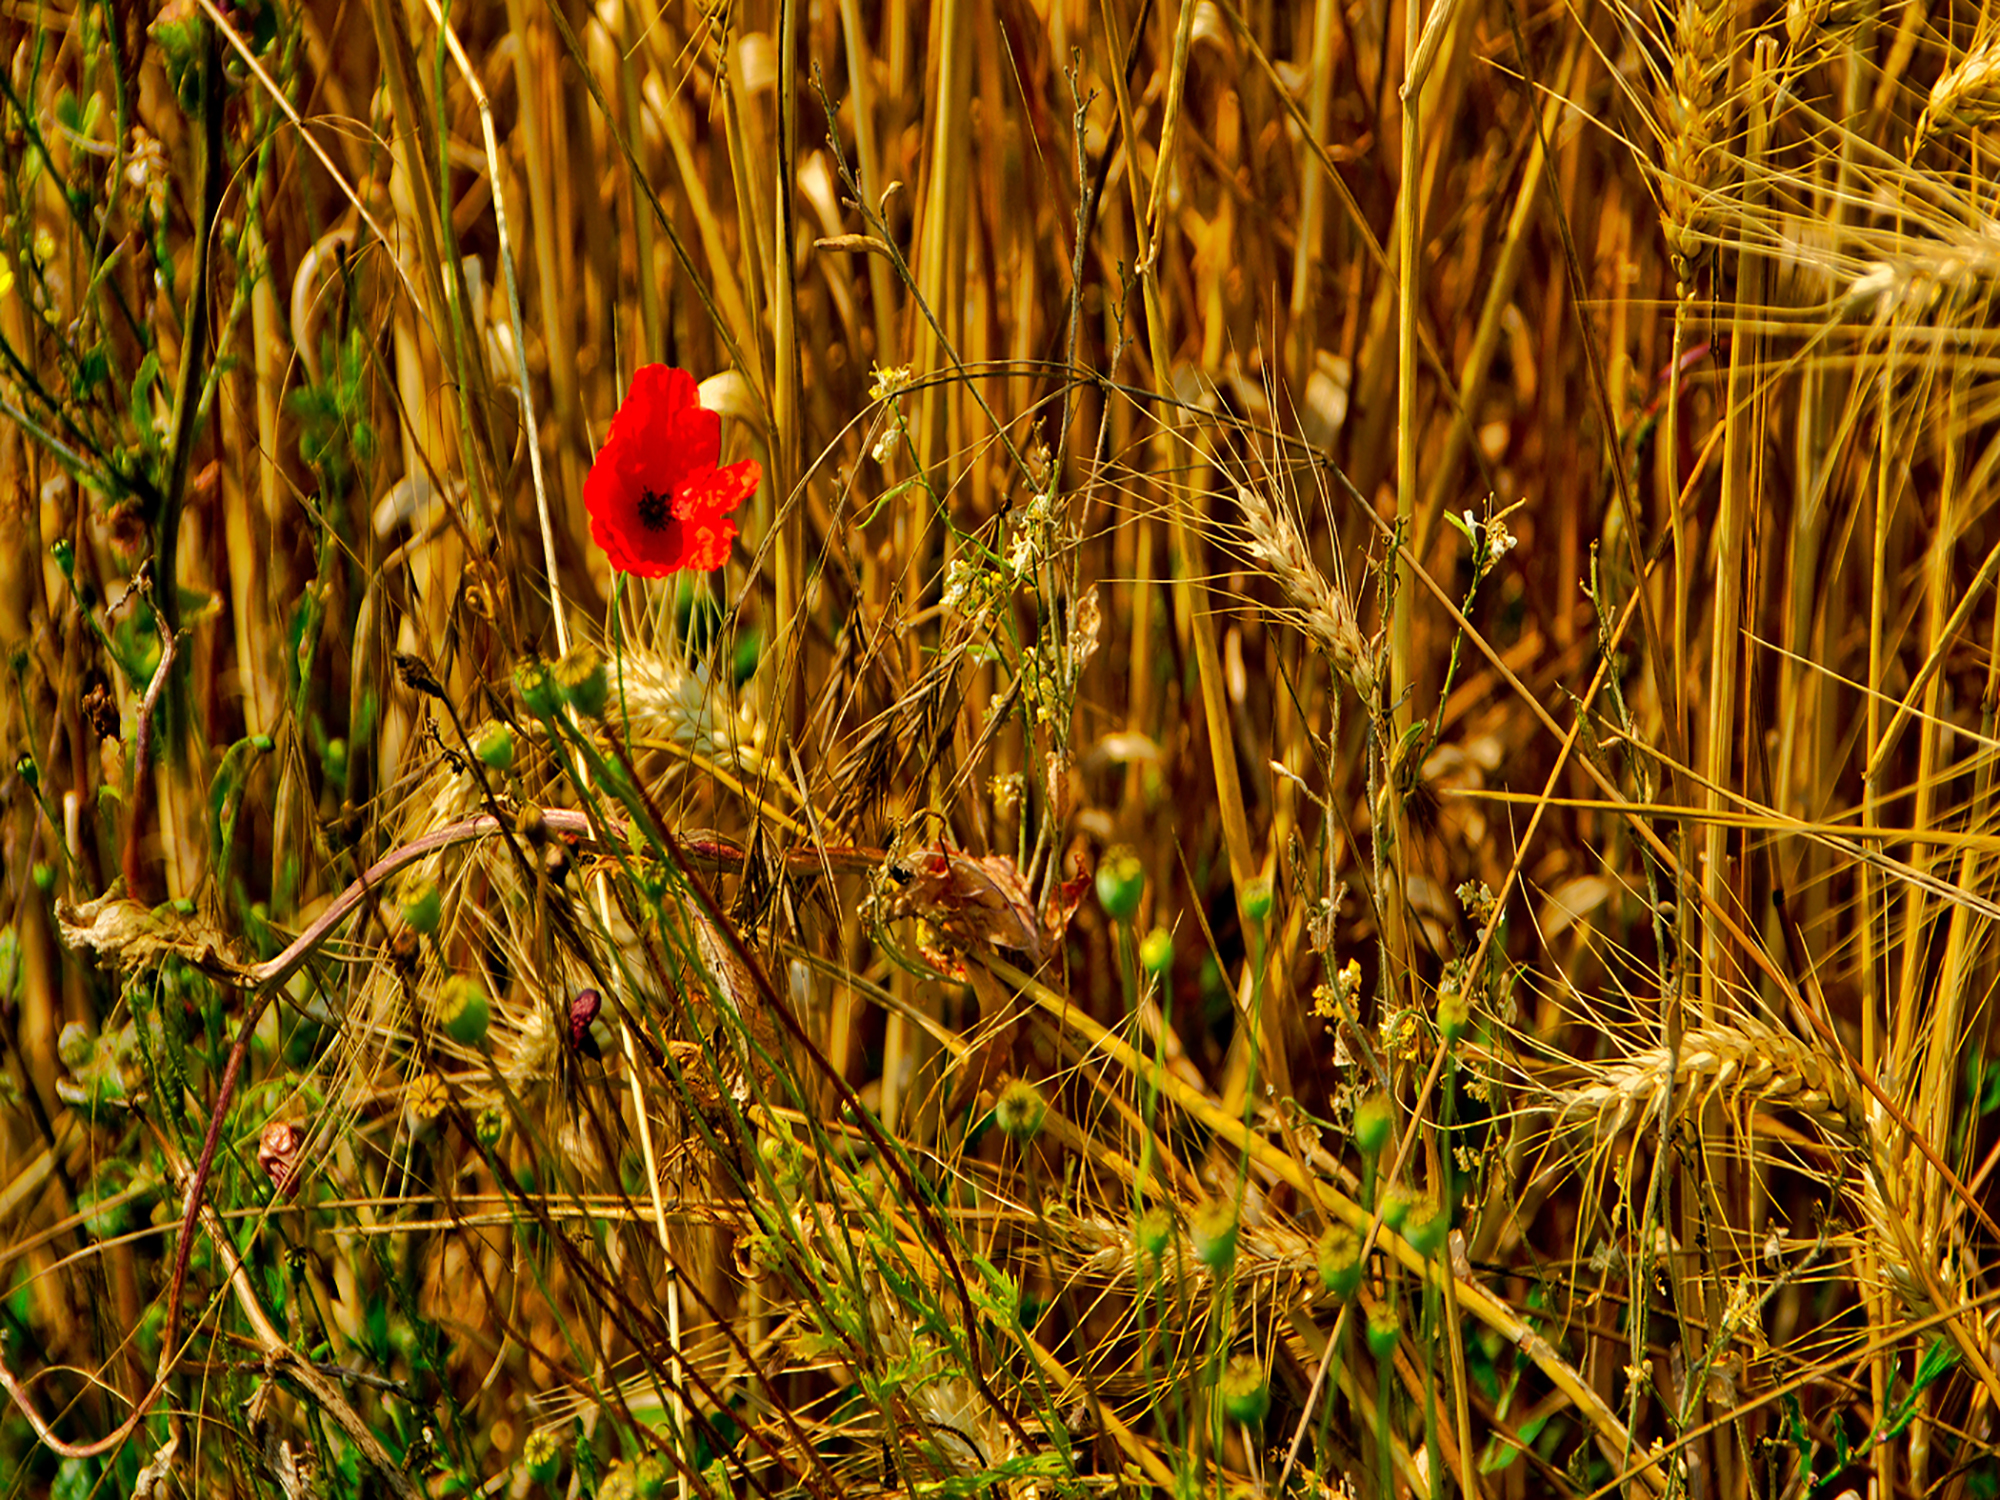 Poppy in Corn By Peter Fortune